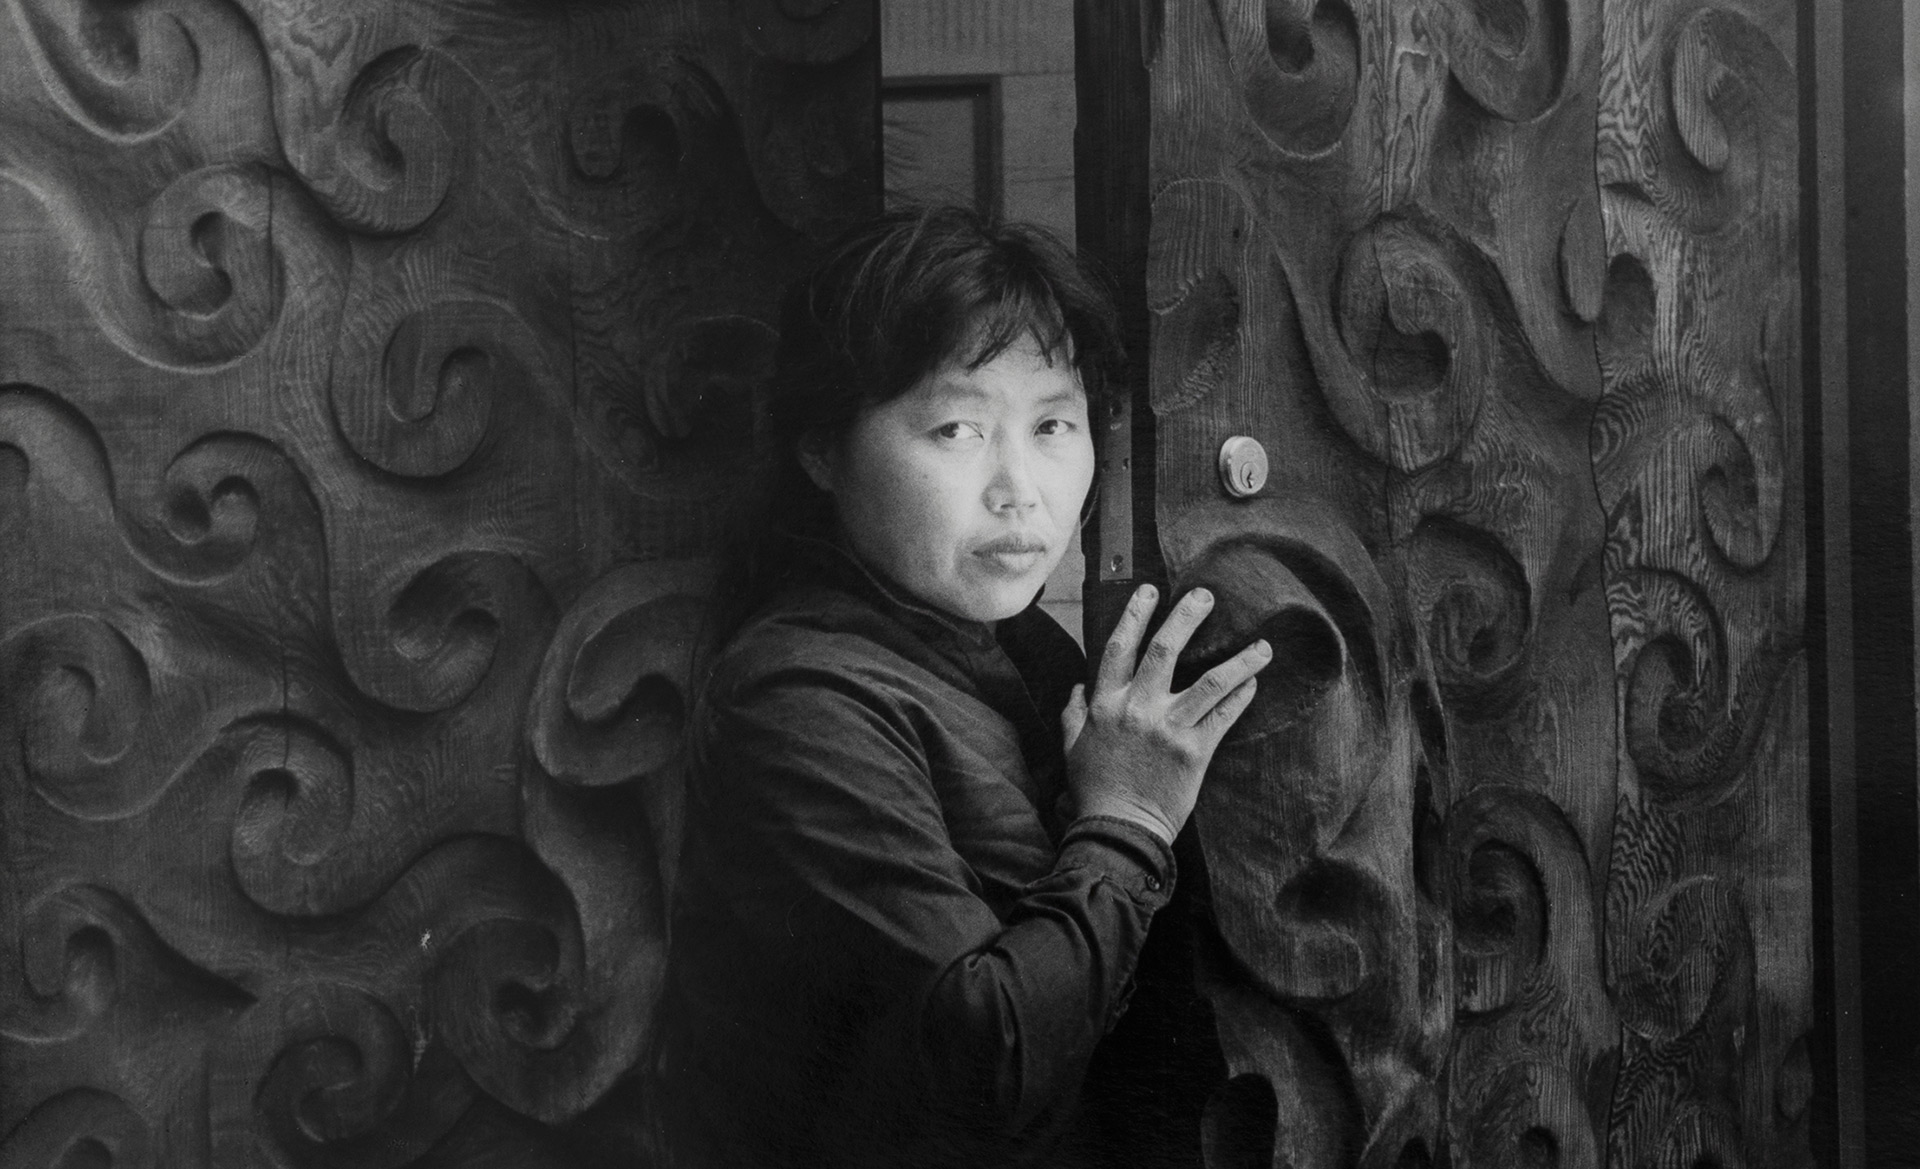 A photo by Imogen Cunningham of Ruth Asawa standing at her door, dated 1963.